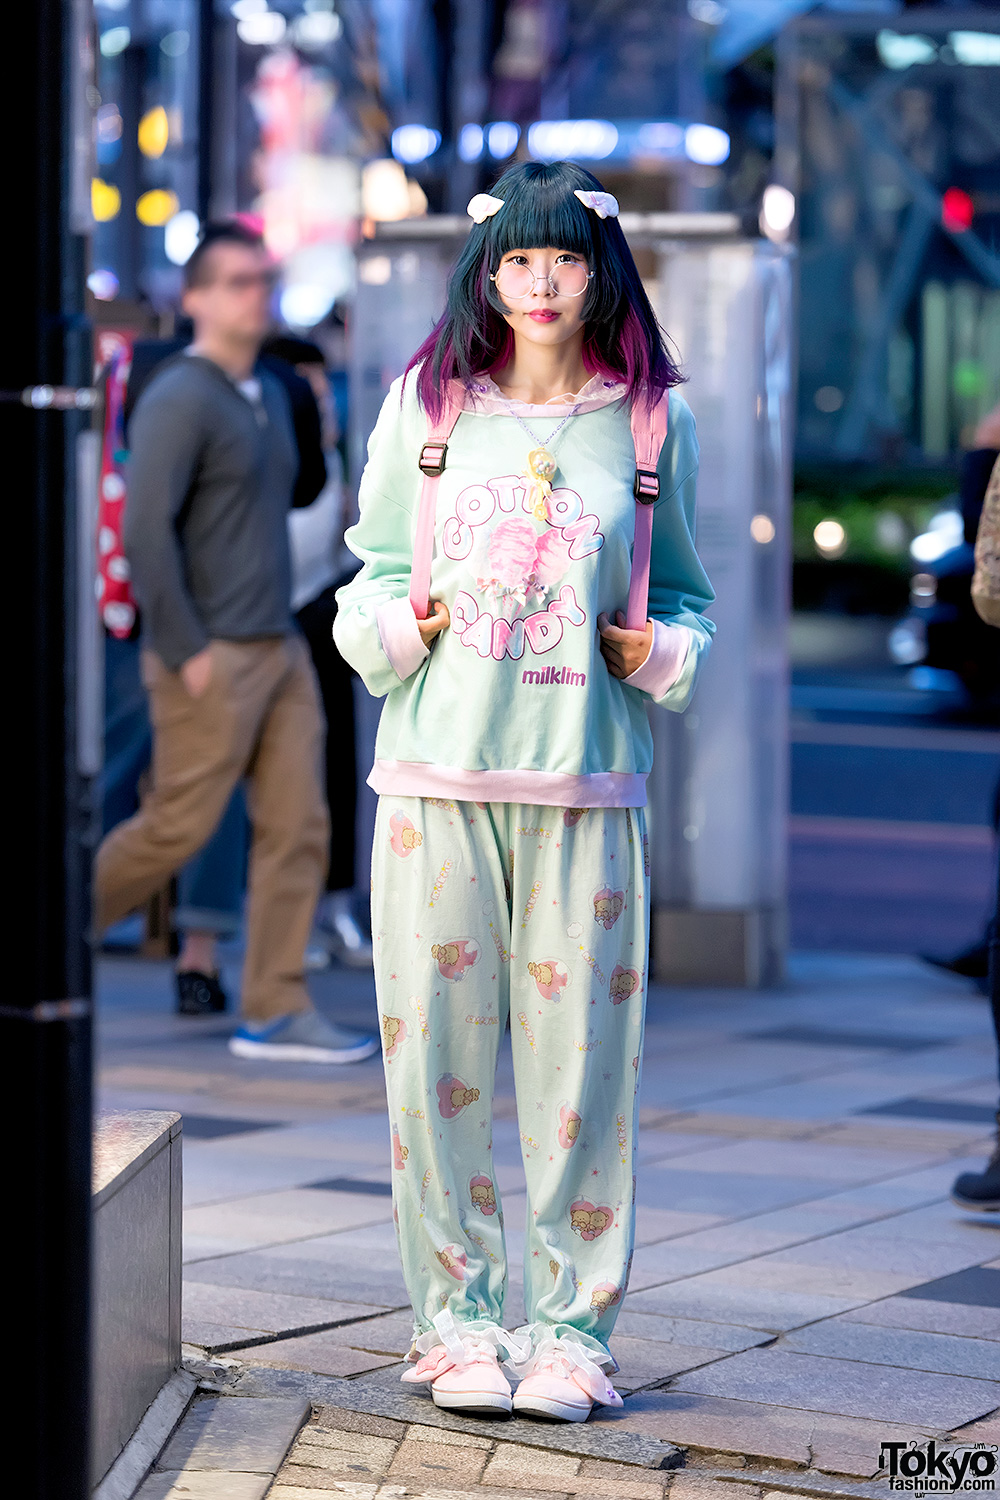 Milklim Sweatshirt Menhera Chan Backpack Pajama Pants